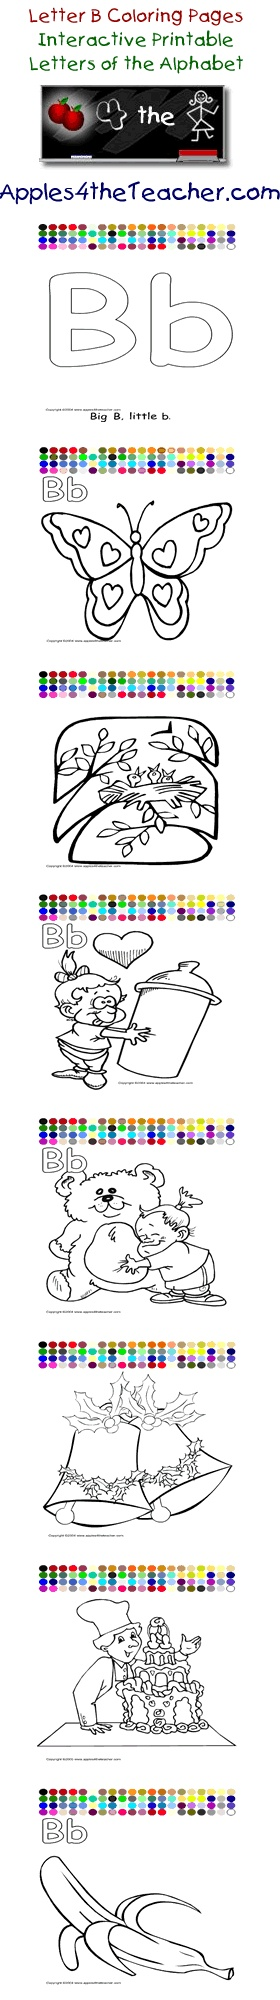 Apples4theteacher Coloring Pages : Apples theteacher printable interactive letters of the